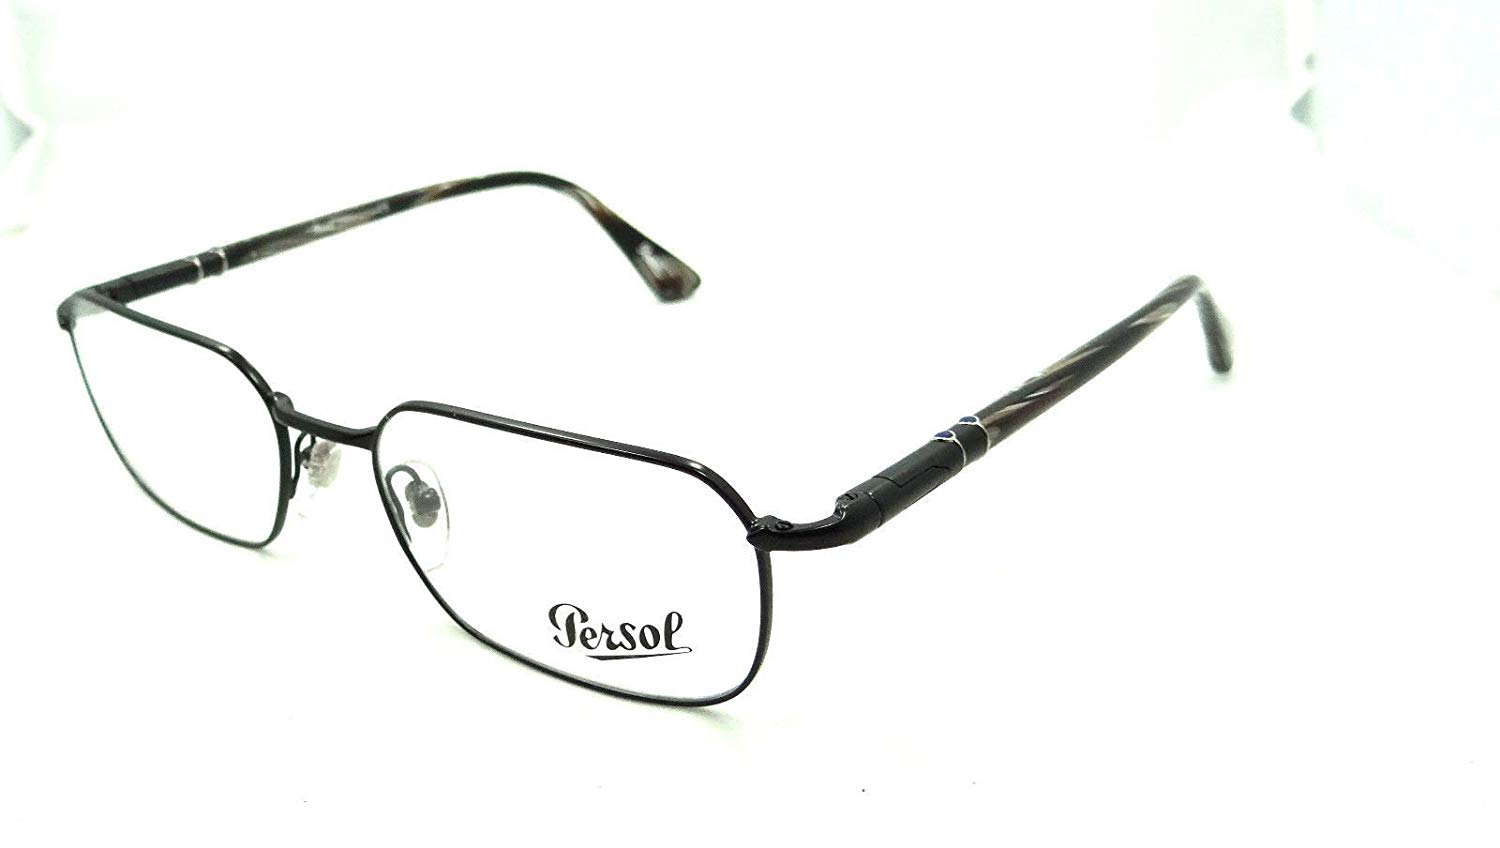 Persol Rx Eyeglasses Frames 2431 V 1055 51x18 Black with Horn Made in Italy